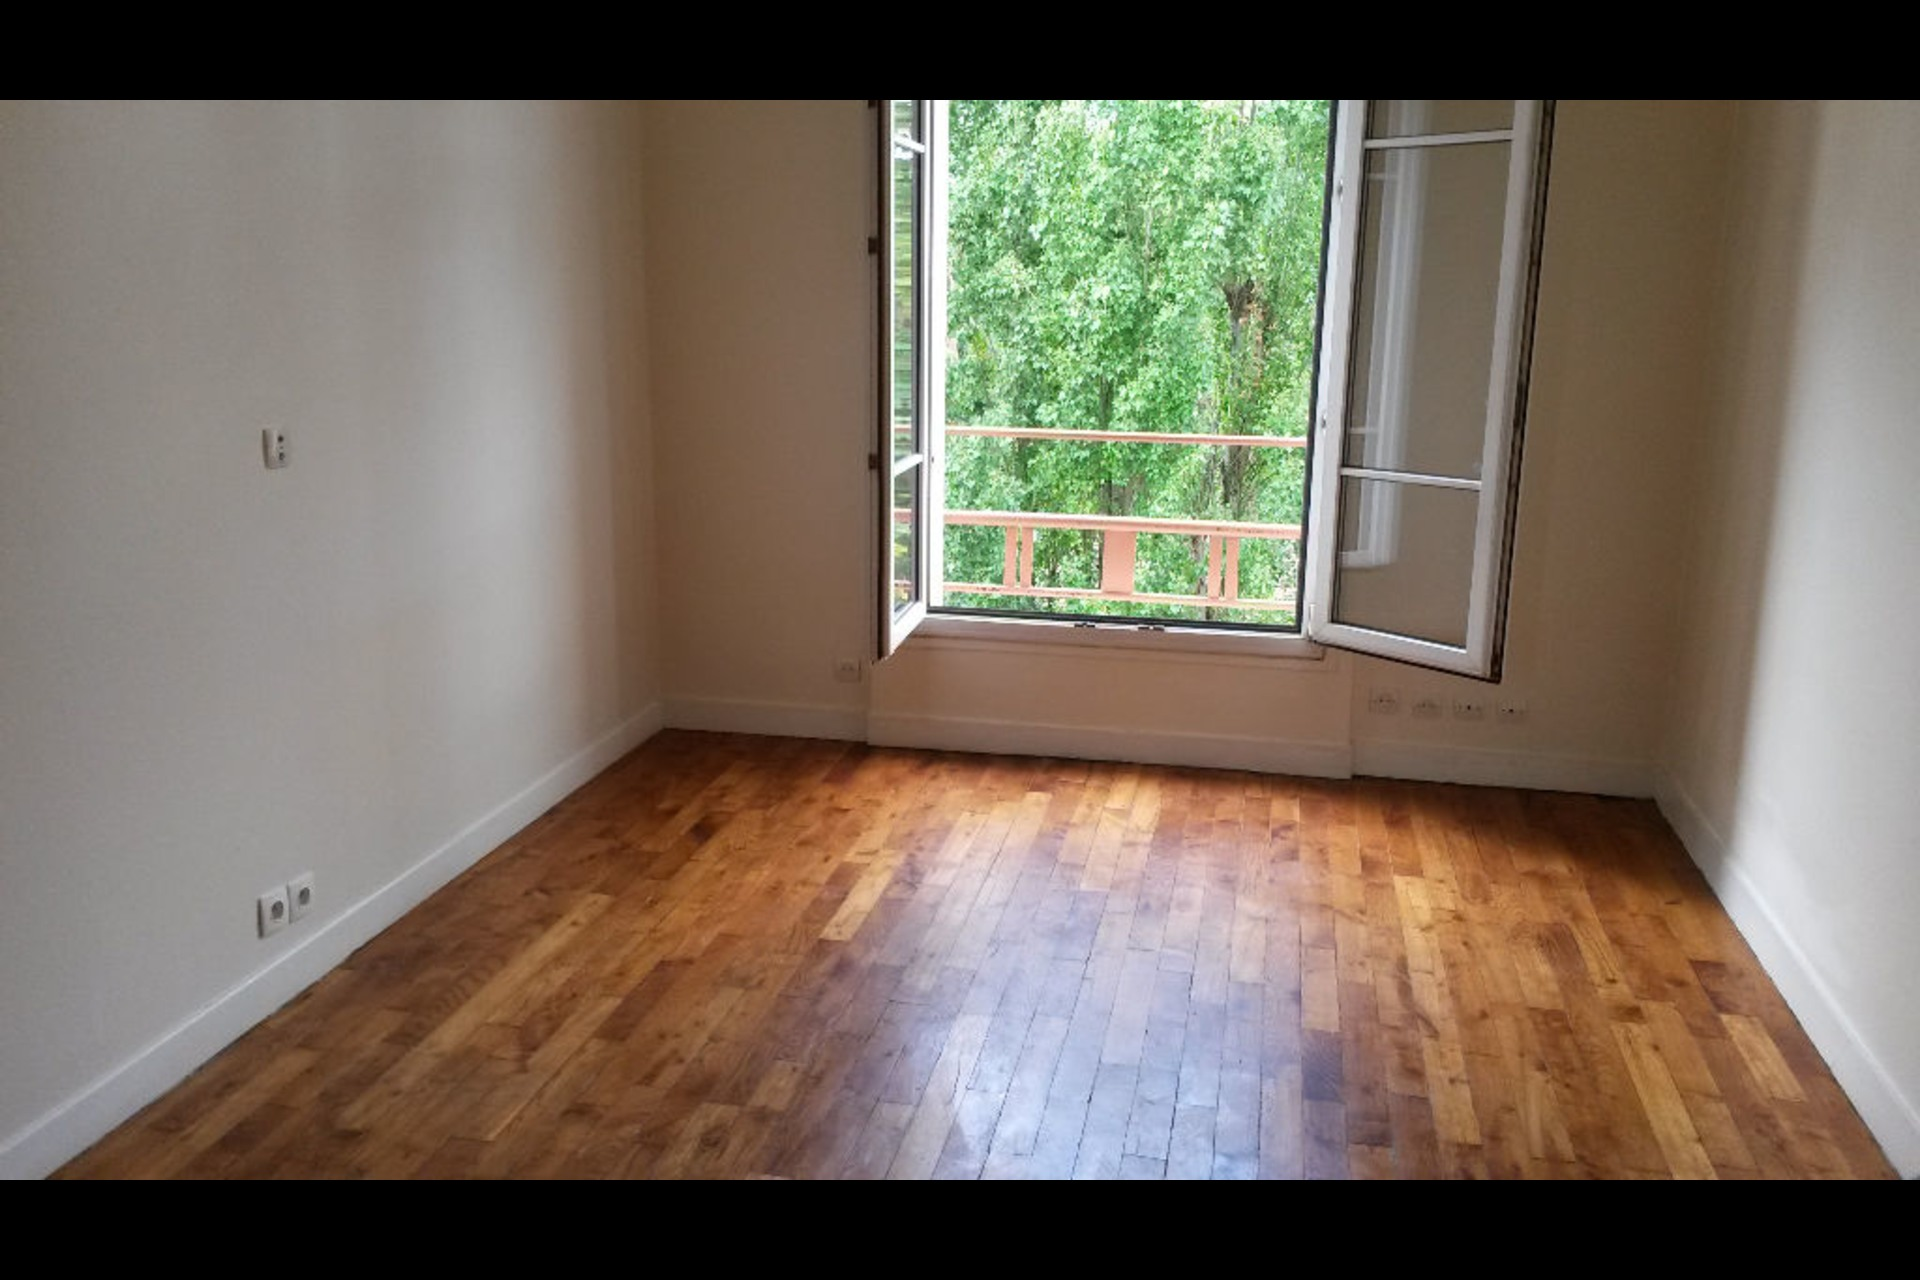 image 1 - Apartment For rent le vesinet - 2 rooms